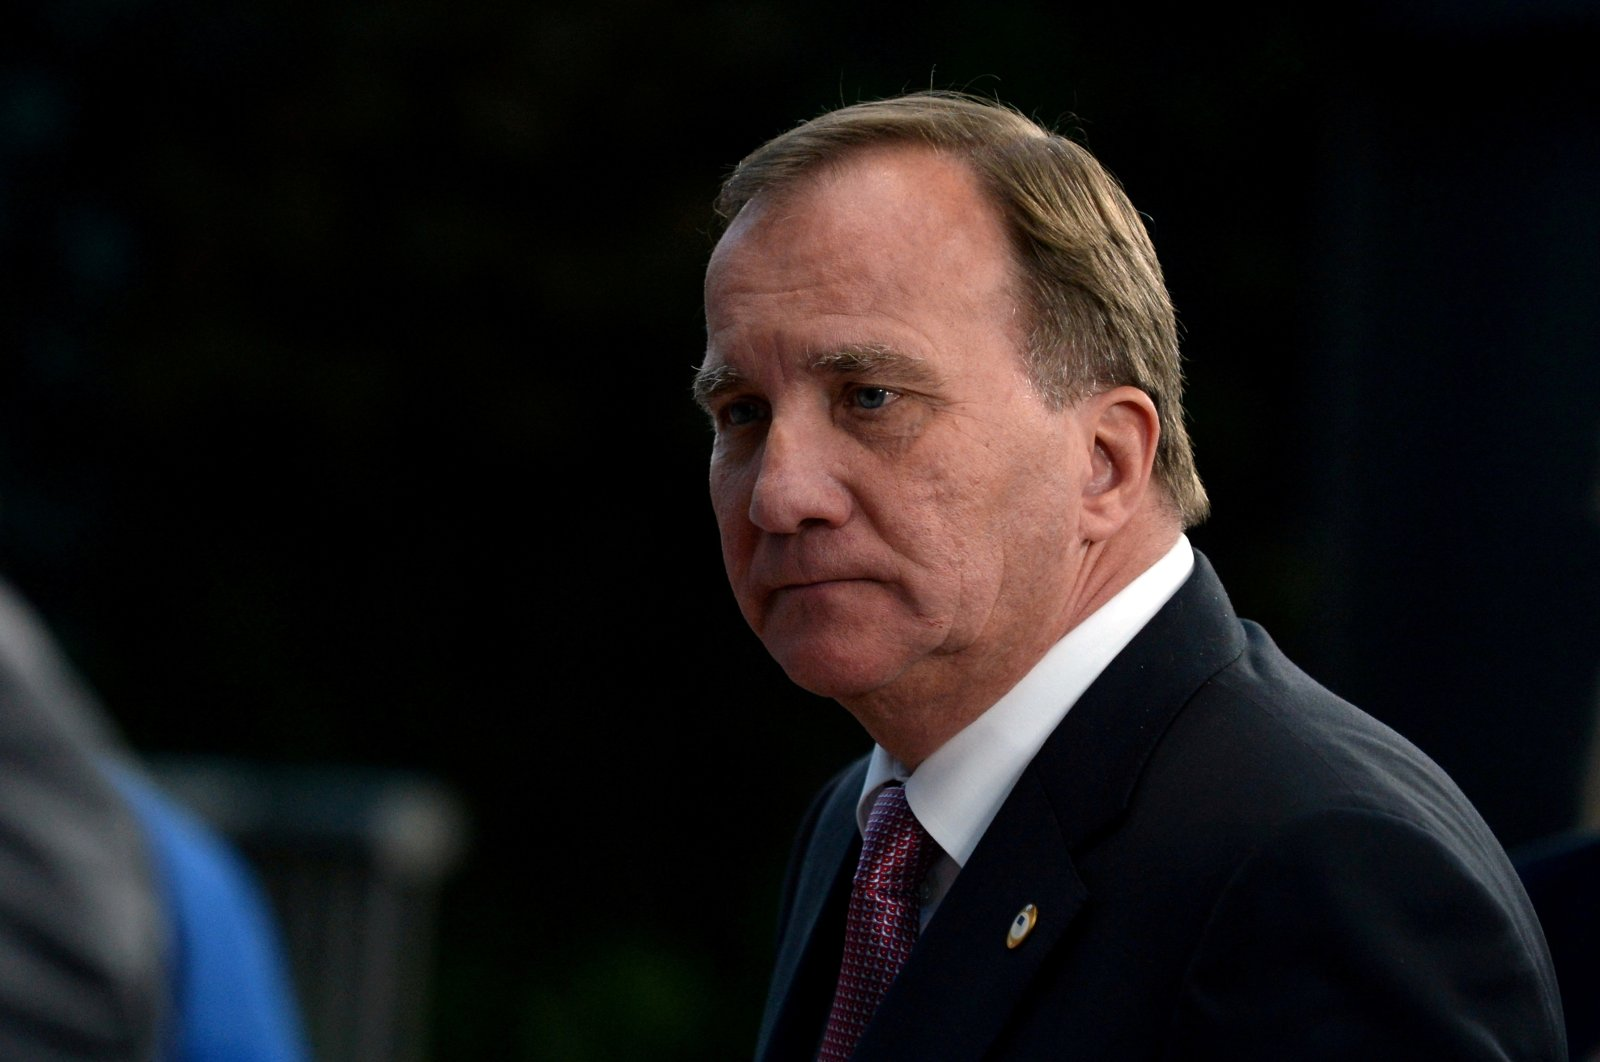 Swedish Prime Minister Stefan Lofven leaves a meeting at the EU summit, in Brussels, Belgium, July 21, 2020. (Reuters Photo)